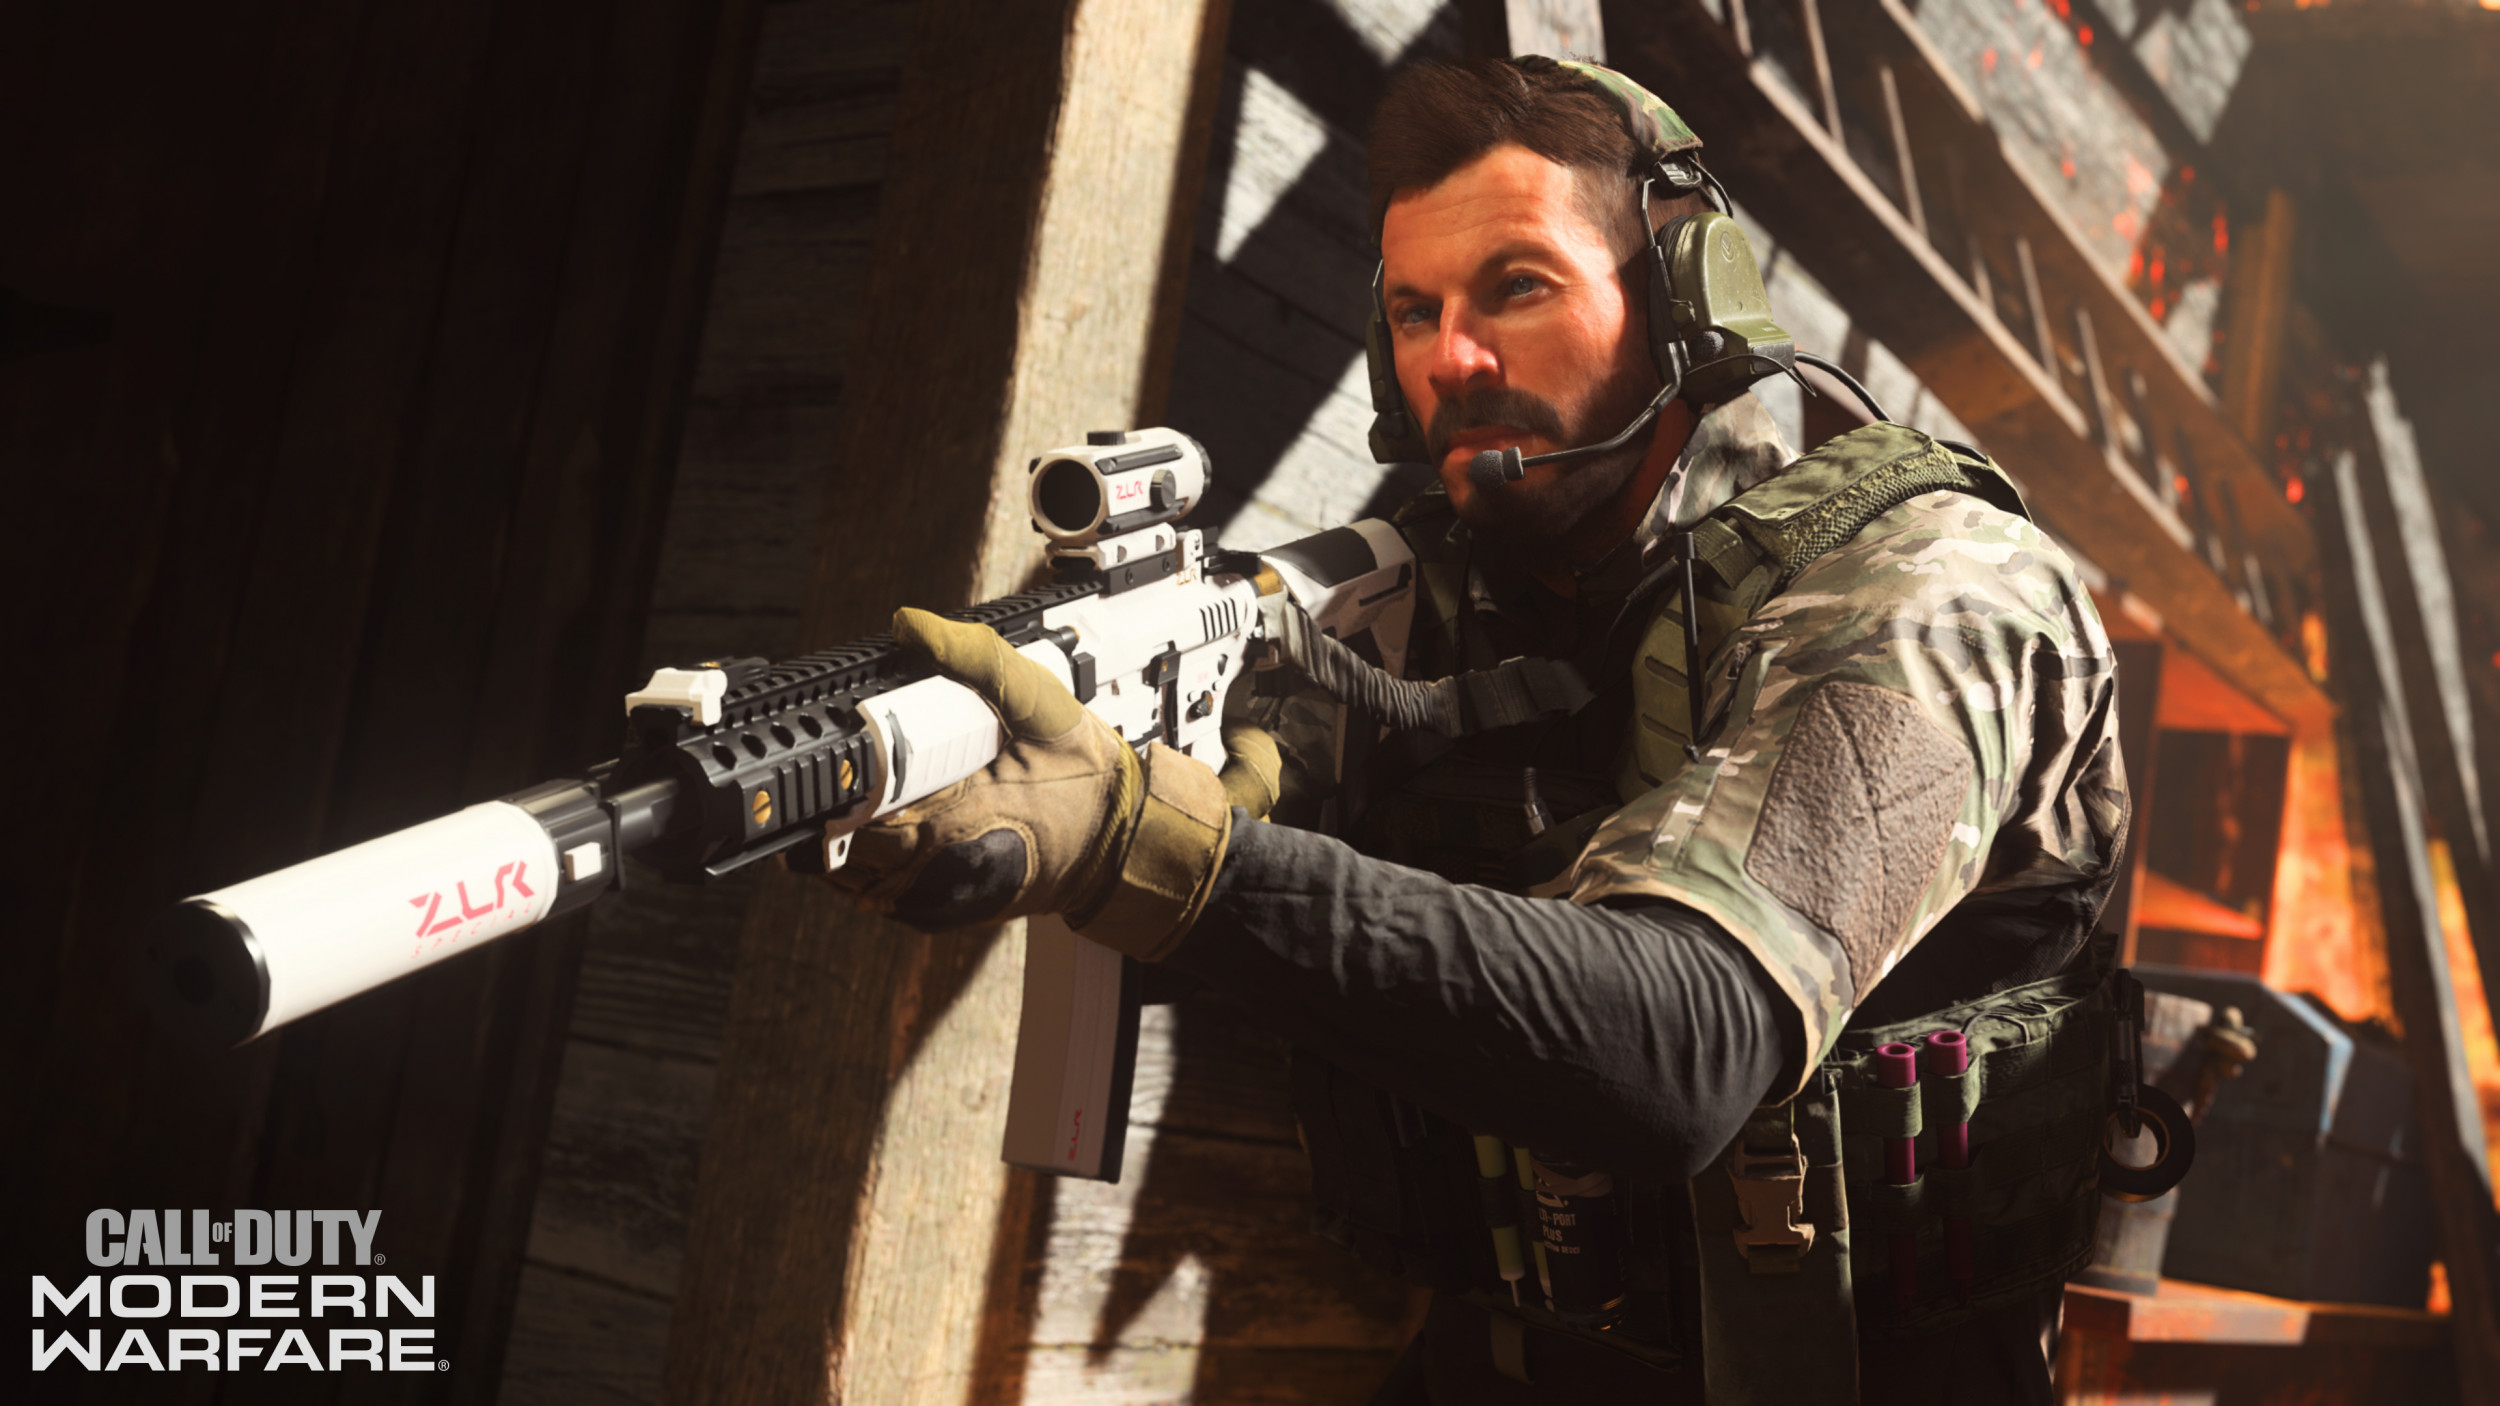 Call Of Duty Modern Warfare Update 1 19 Adds Season 3 Alex More Patch Notes